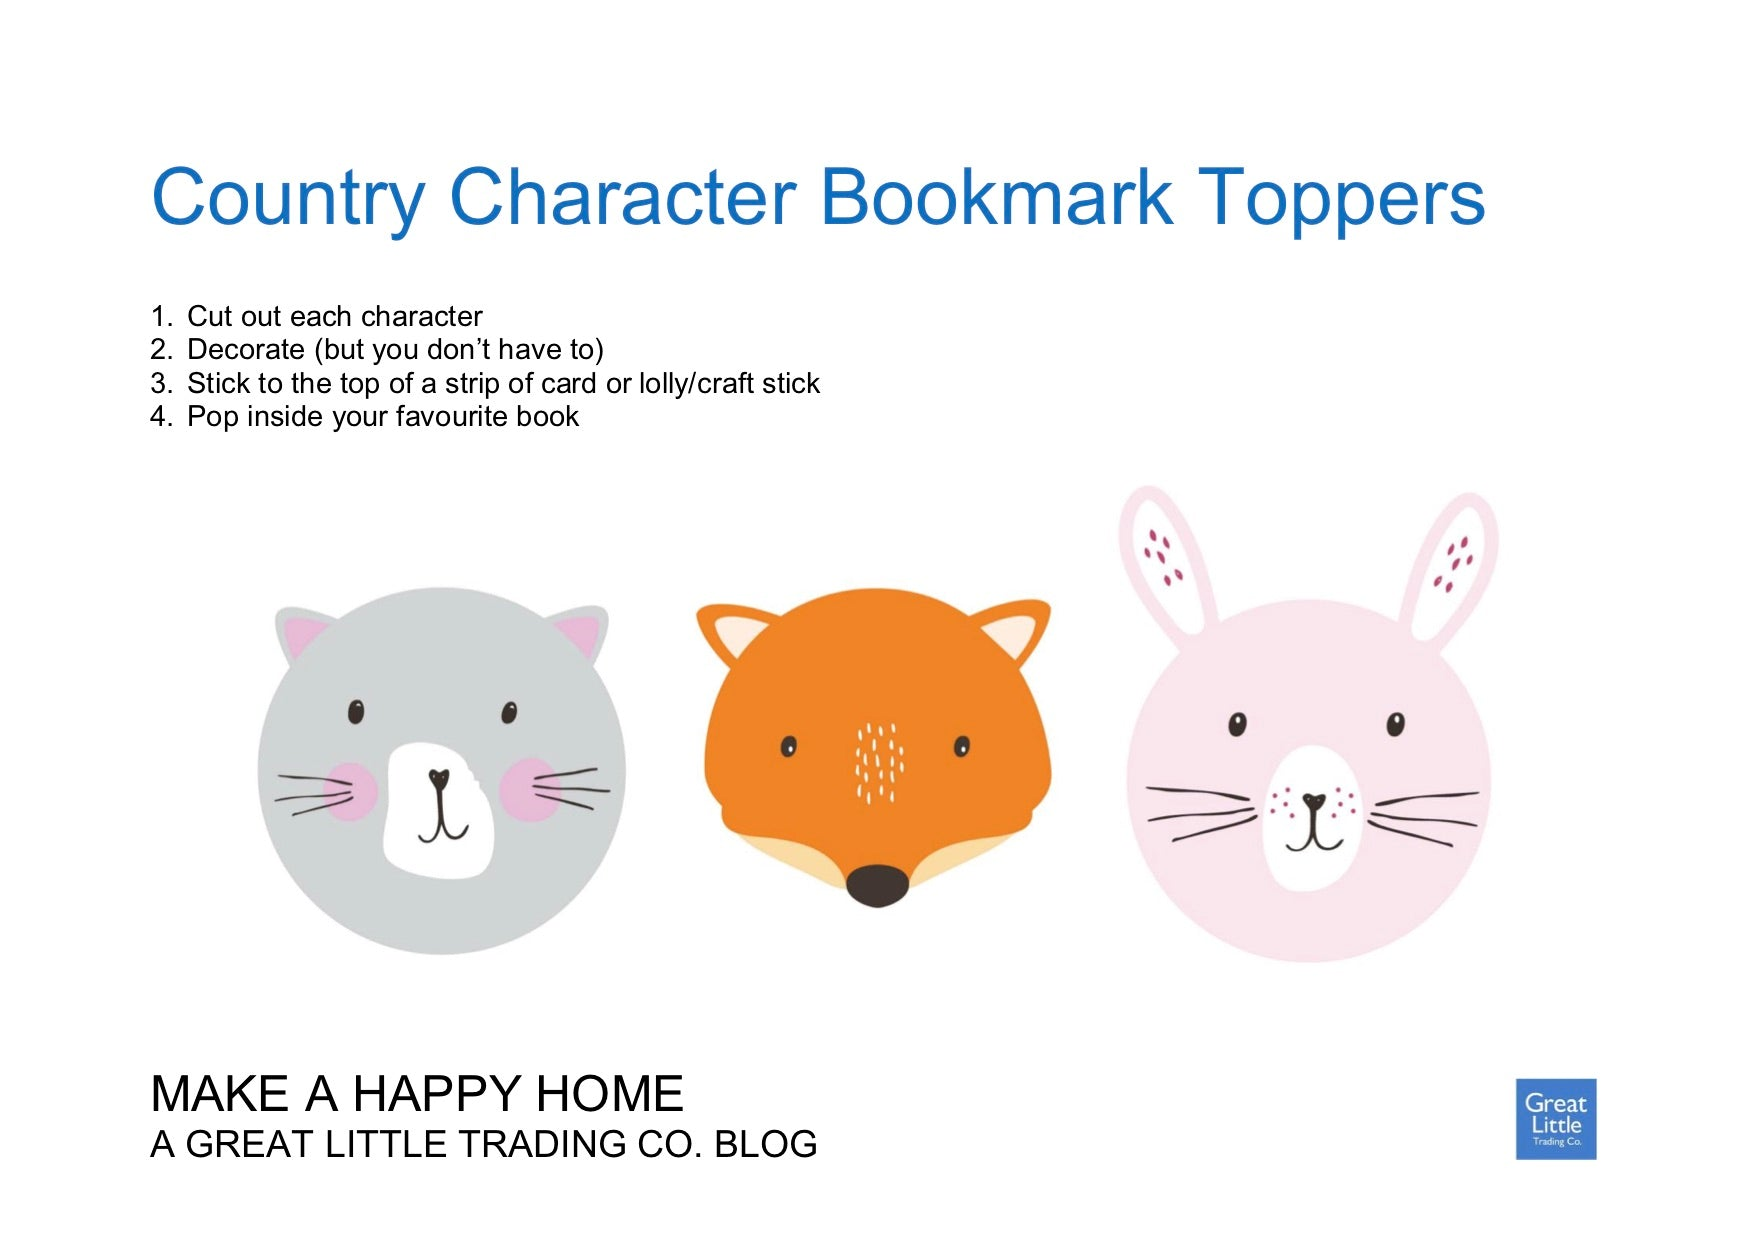 Get Crafty: Make Your Own Country Character Bookmarks